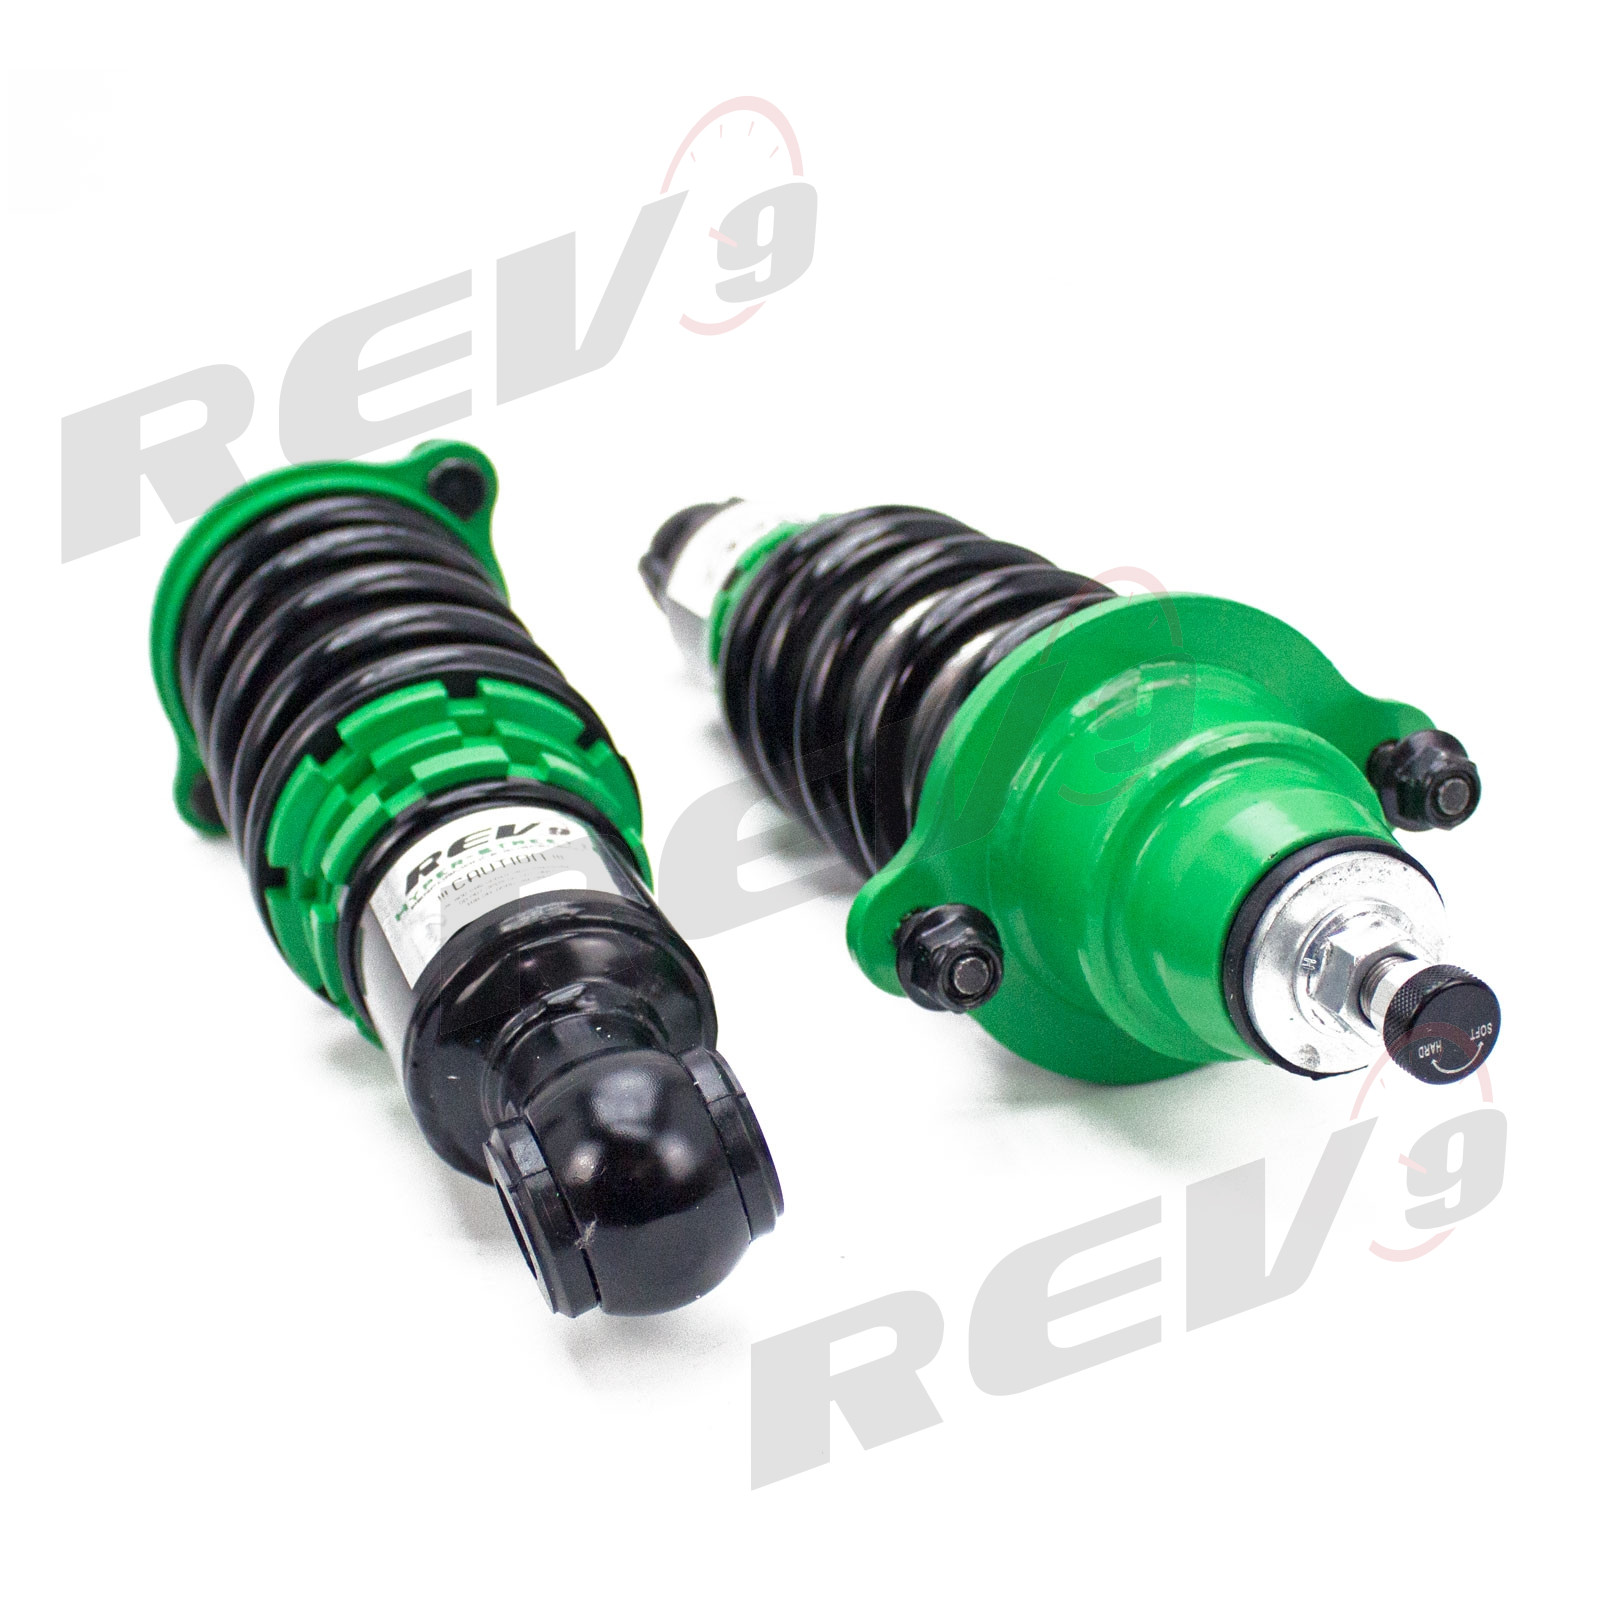 2002-06 Hyper-Street II Coilovers Lowering Kit by Rev9 DC5 32 Damping Level Adjustment R9-HS2-013/_1 made for Acura RSX